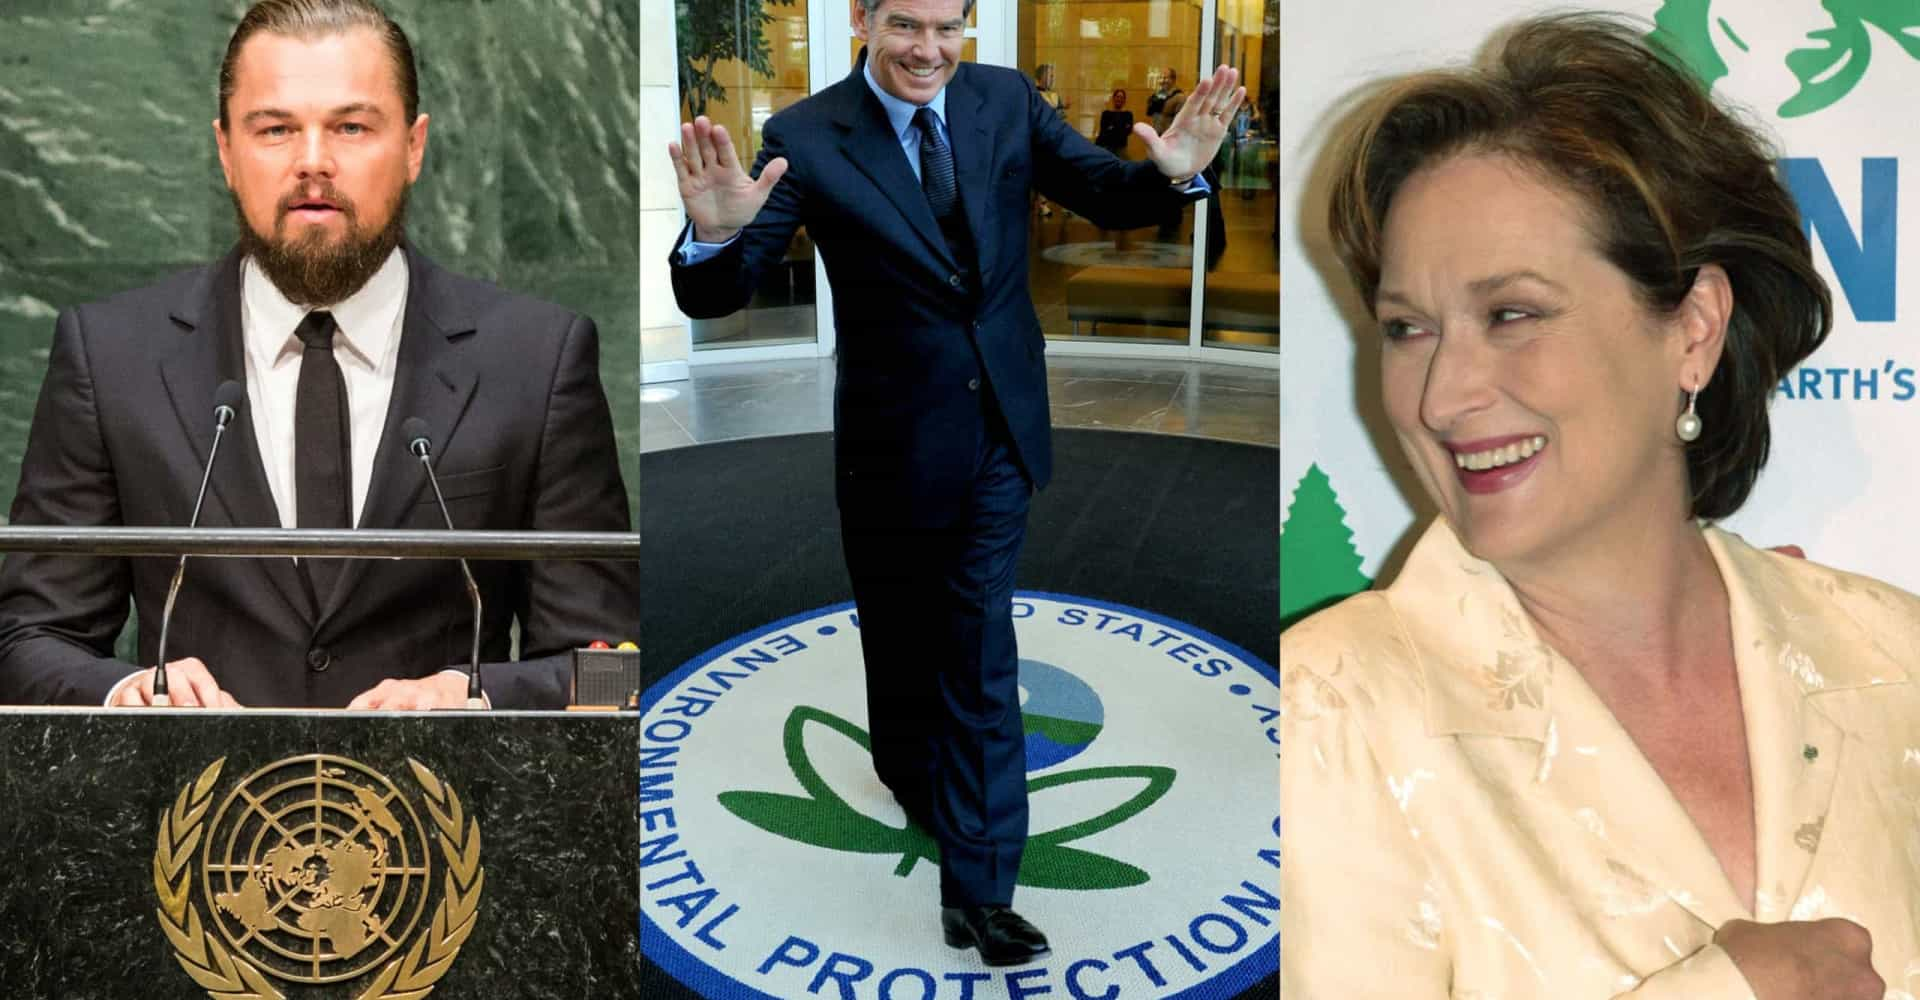 Going green: celebs who champion environmentalism